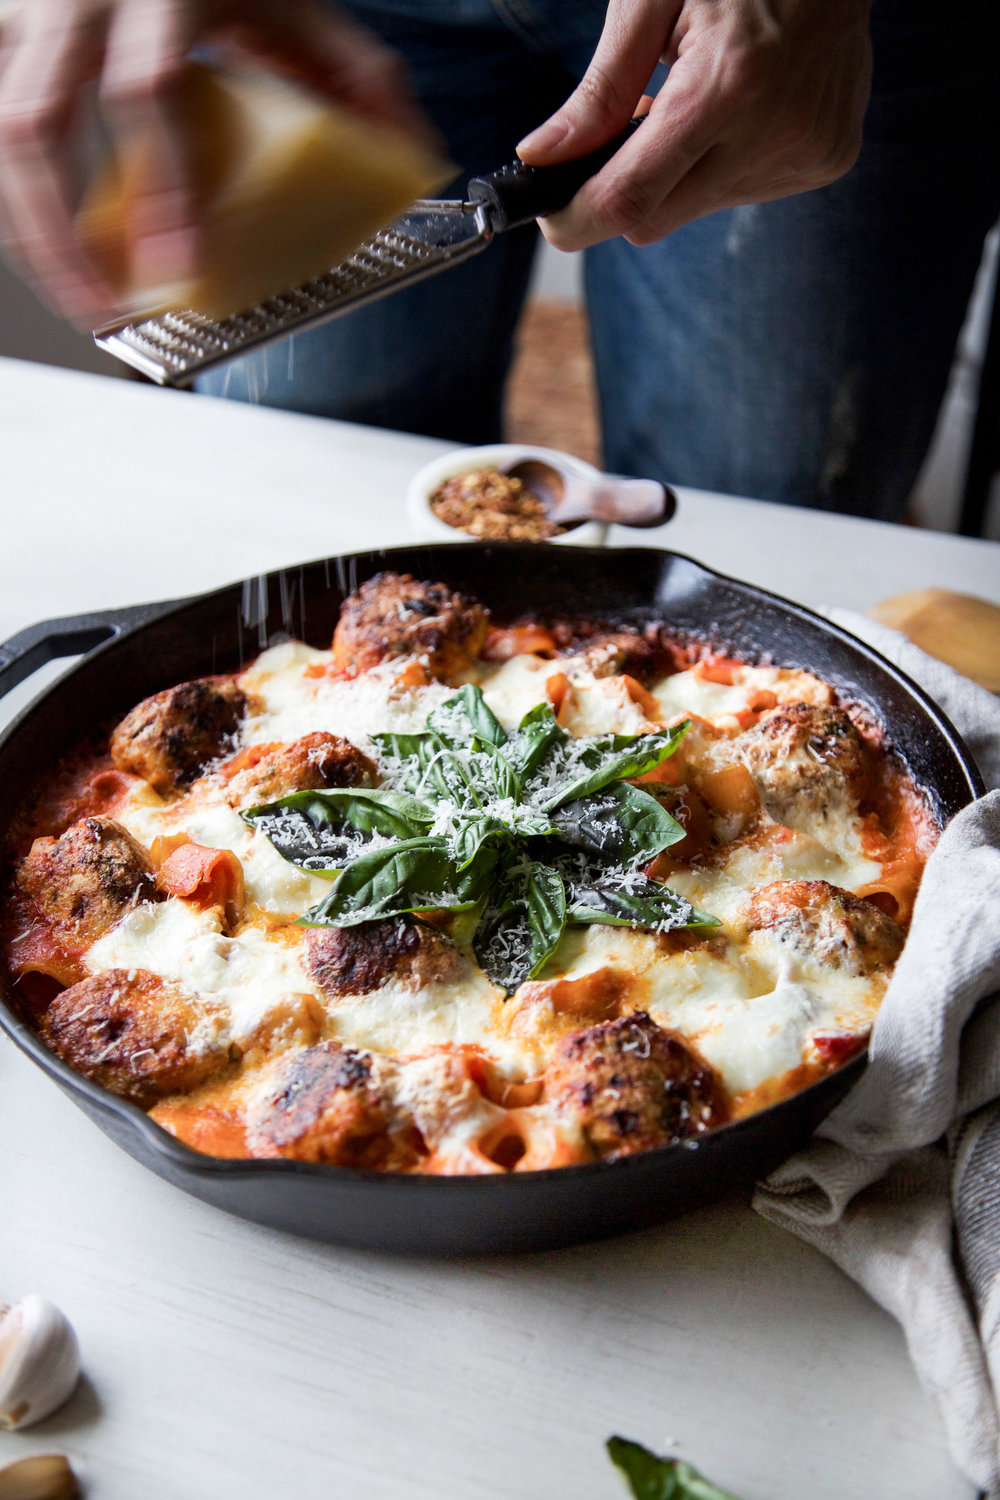 One-Pan-Chicken-Parm-Meatball-Burrata-Pasta-Bake5.jpg